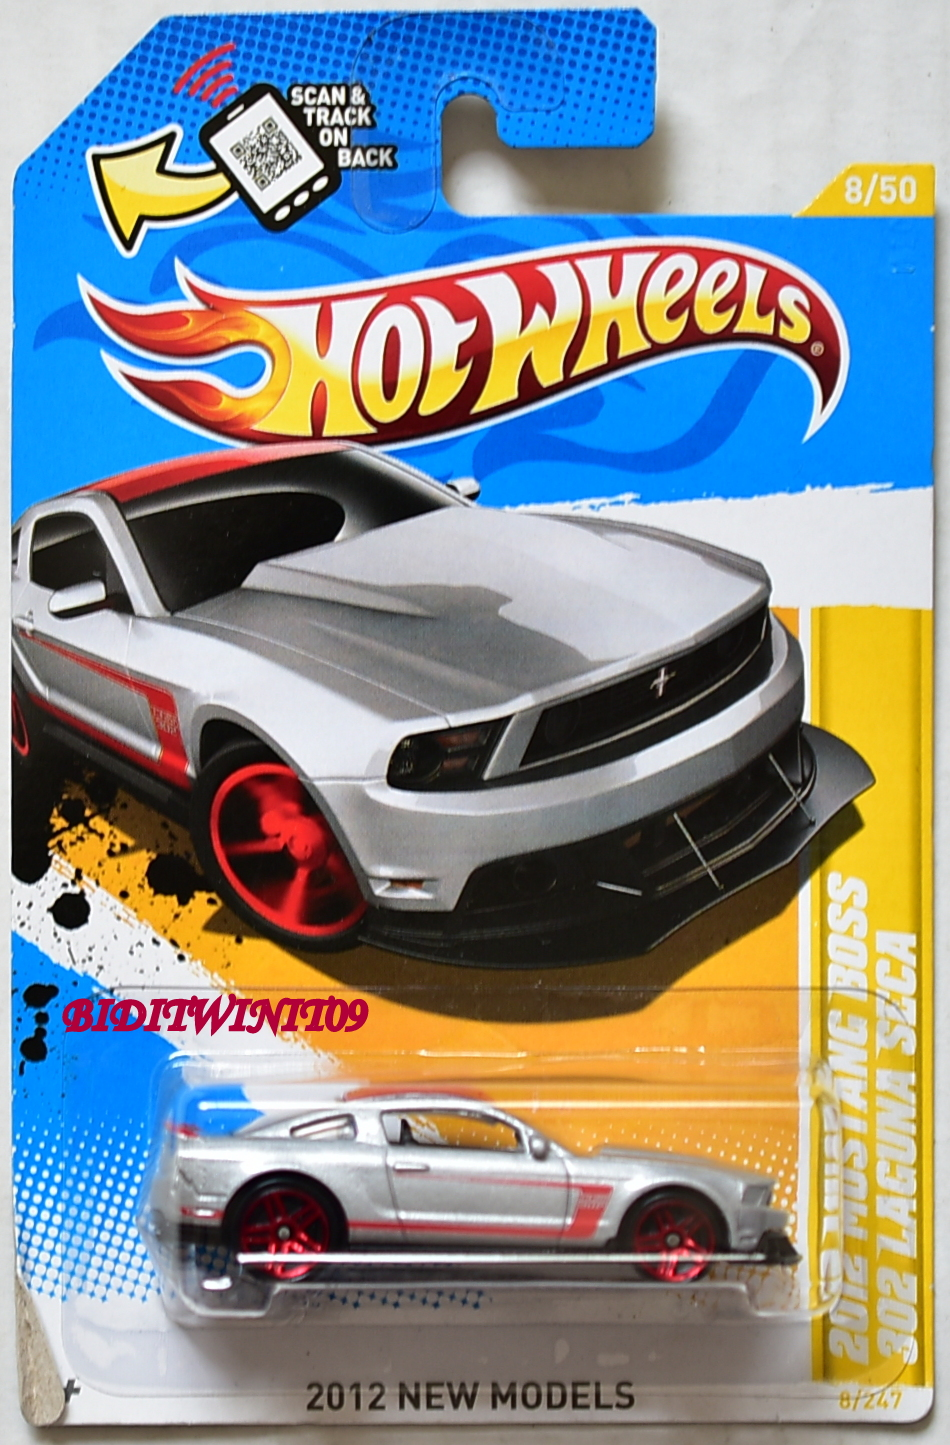 HOT WHEELS 2012 NEW MODELS 2012 MUSTANG BOSS 302 LAGUNA SECA